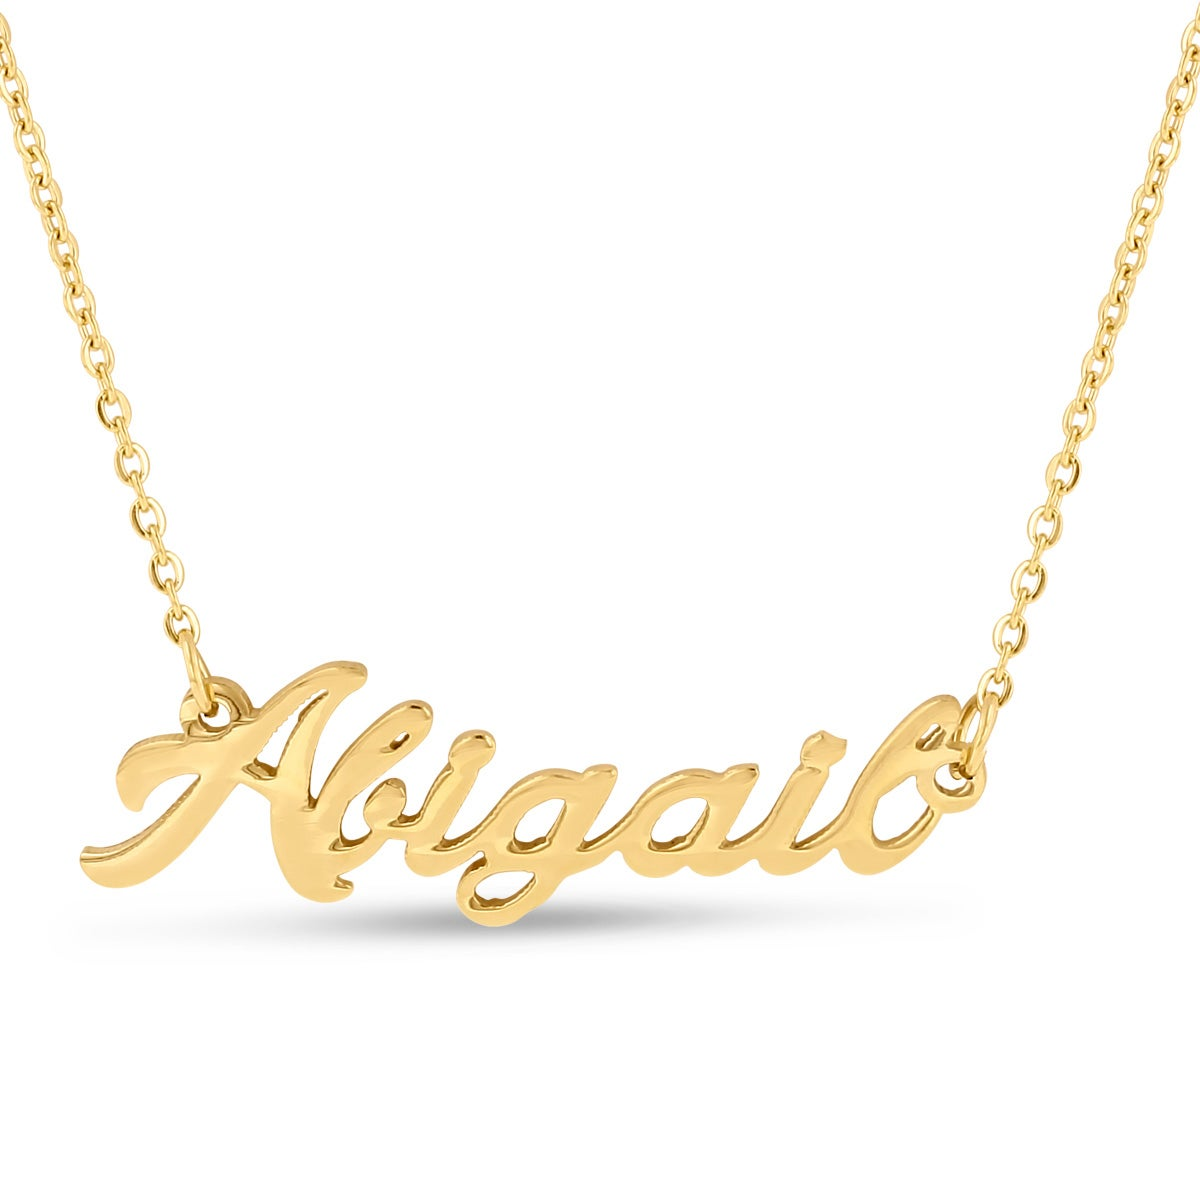 Golden Personalized Name Necklace, 100 Names Available Immediately